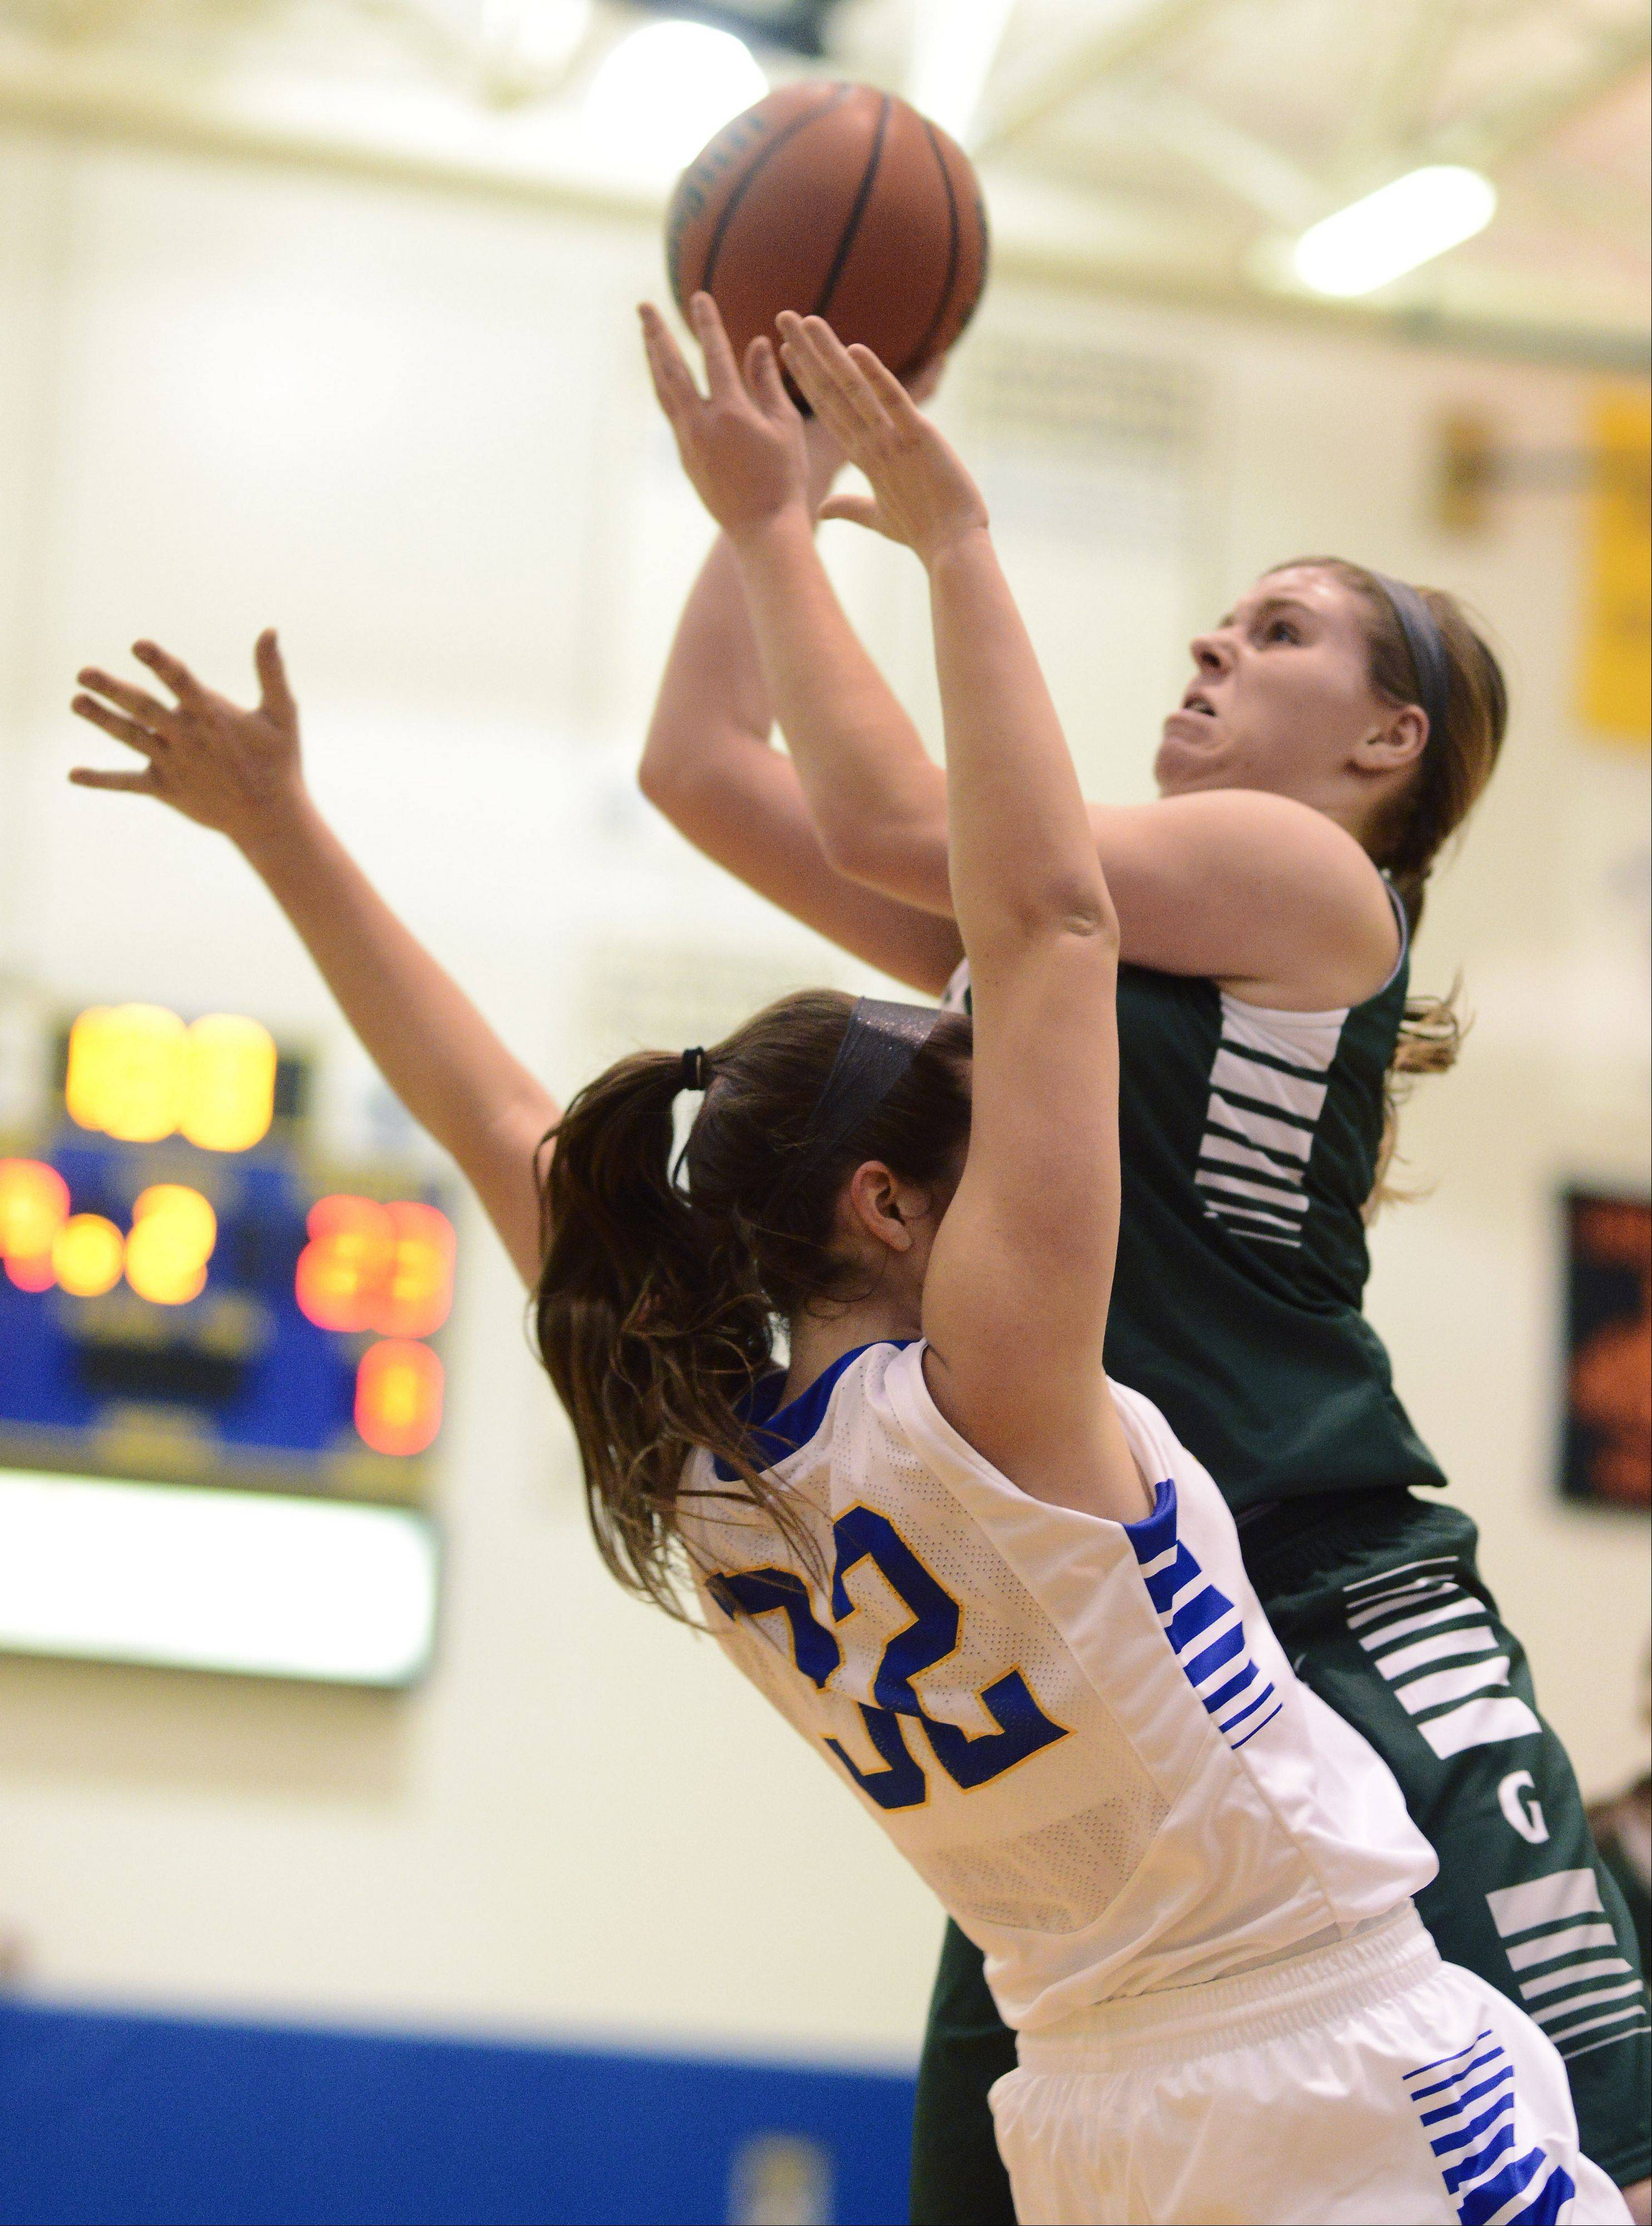 Graylake Central's Maddy Miller, right, draws contact from Lake Forest's Annie Keller during Saturday's game at Warren.